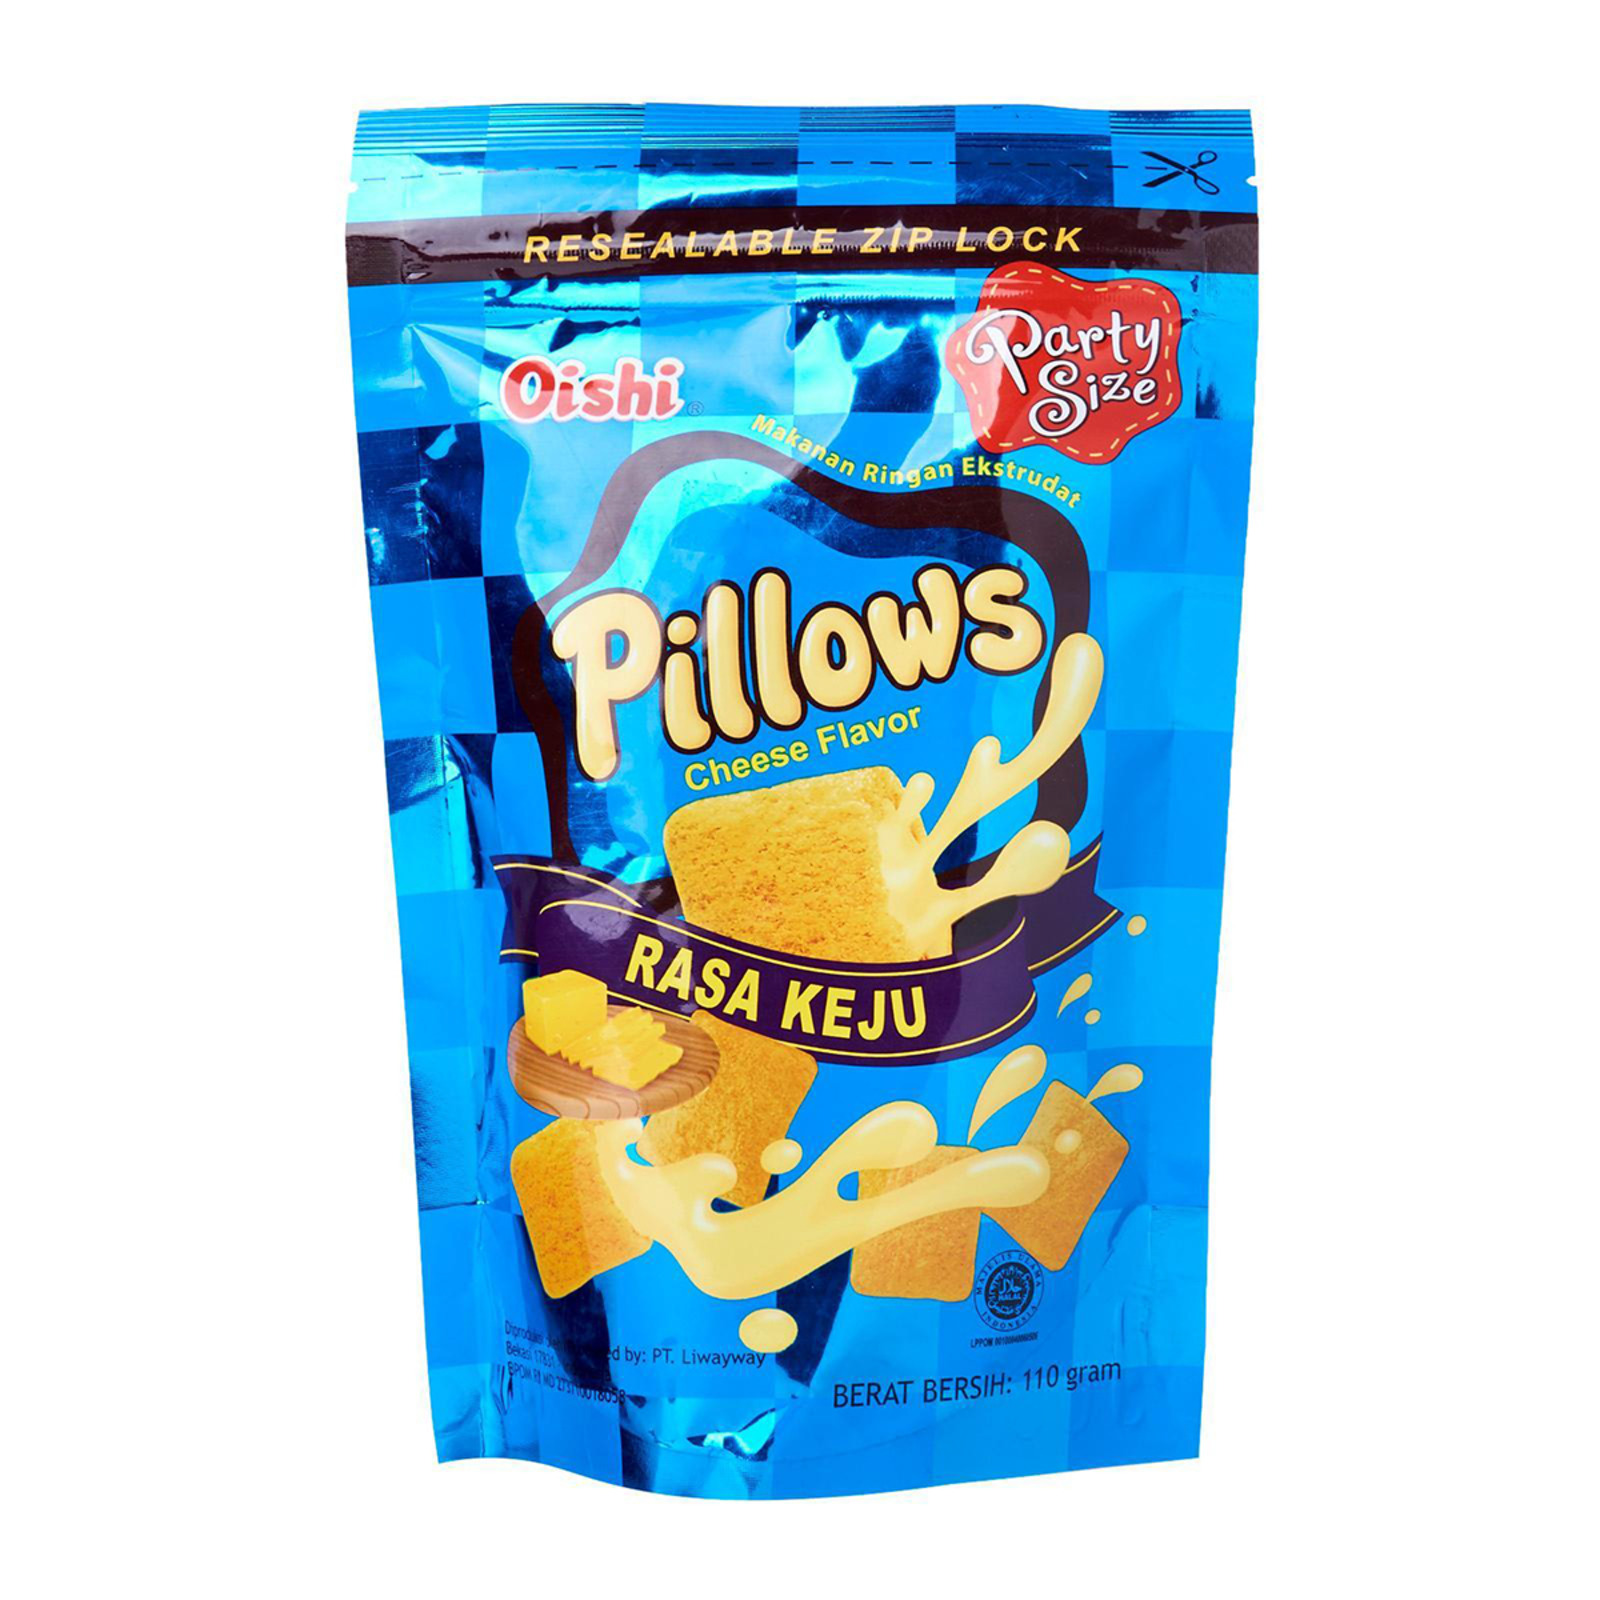 Oishi Pillows Party Size - Cheese